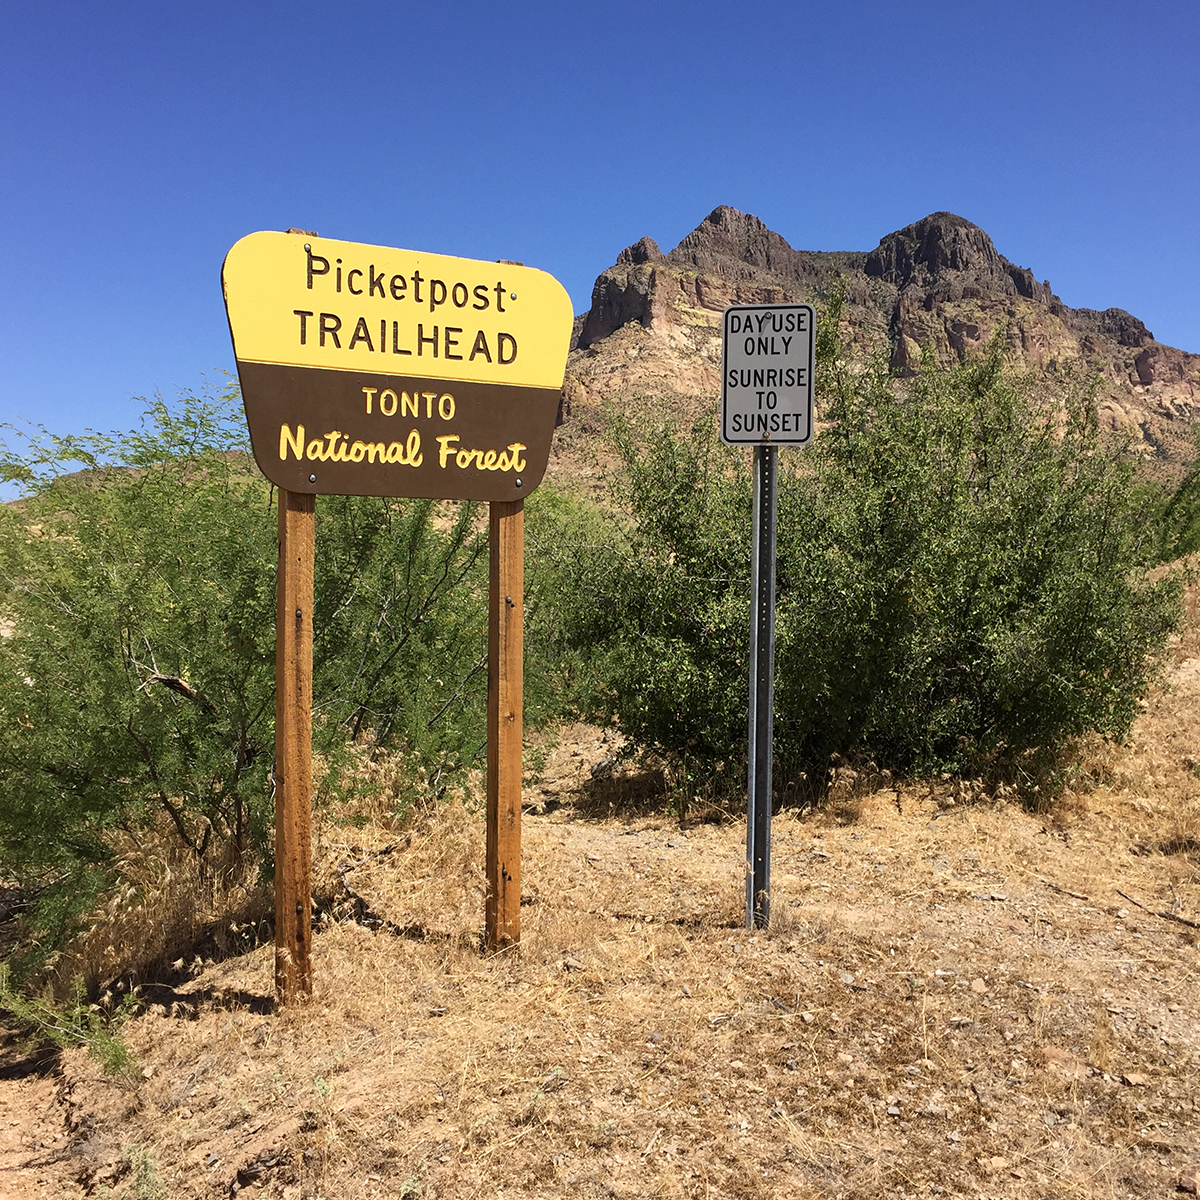 Picketpost Trailhead - Arizona